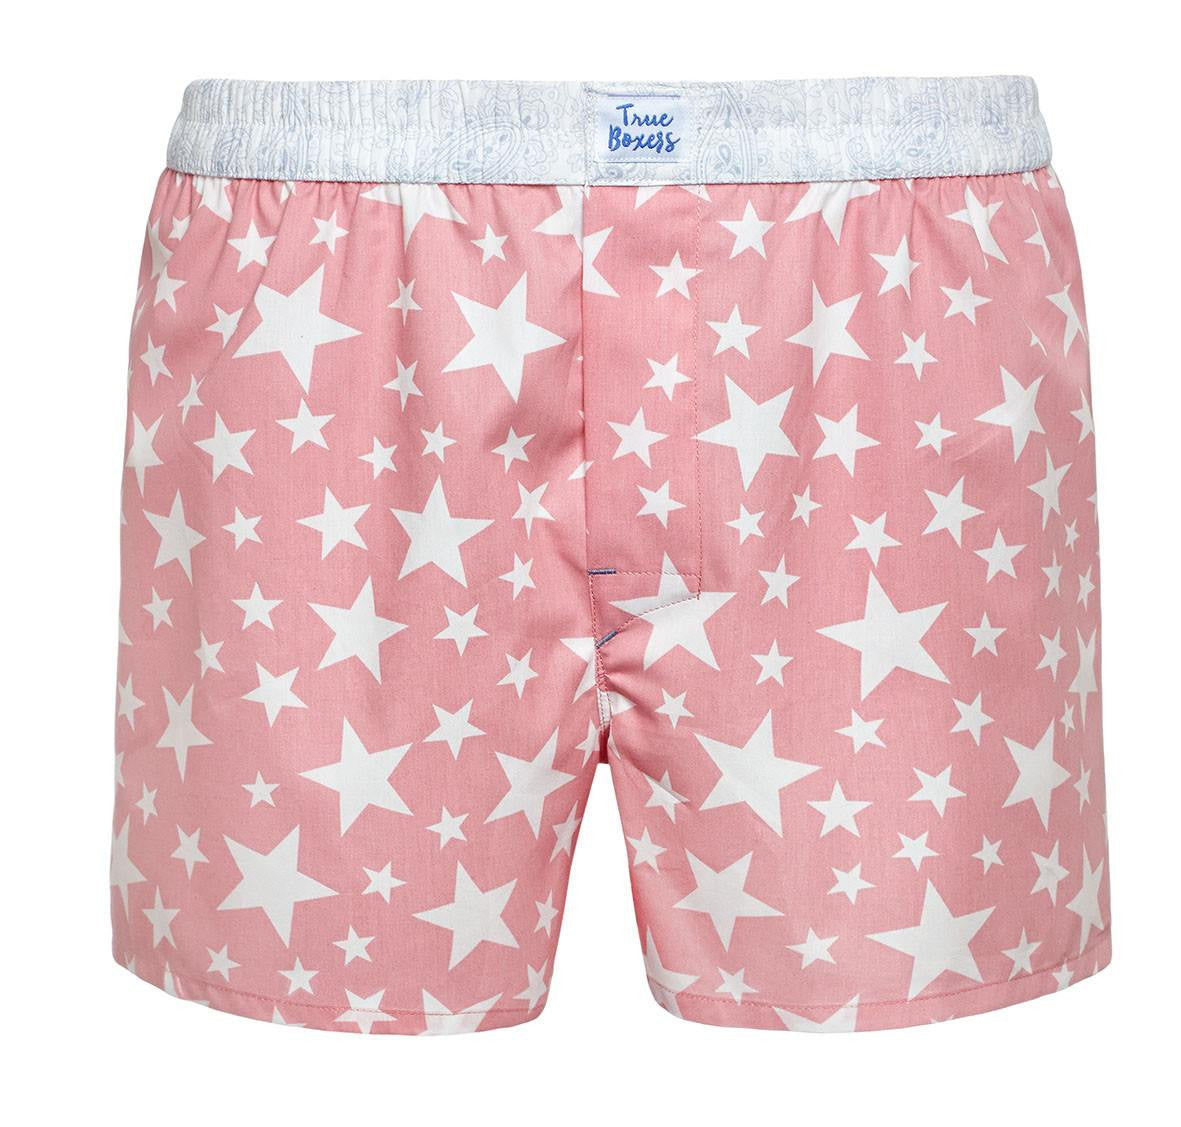 Smart Taste - pink stars with paisley Boxer Short - True Boxers